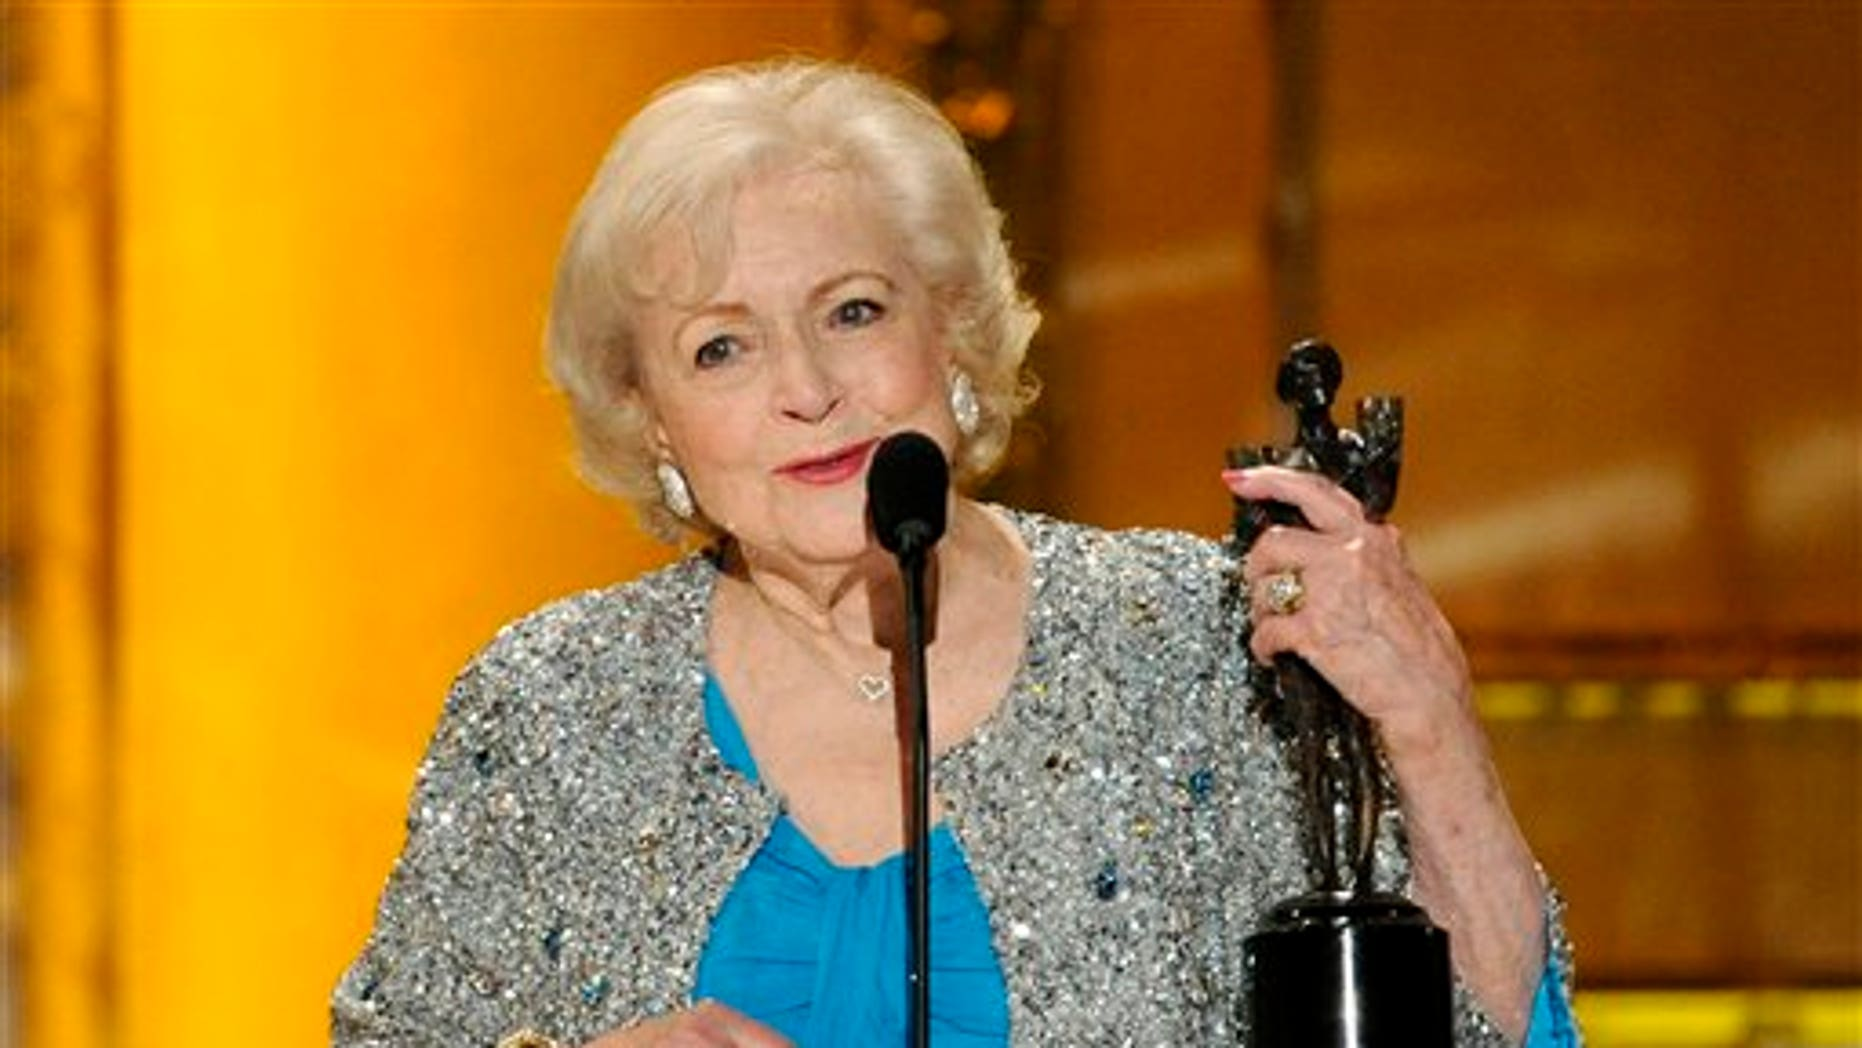 Jan. 30: Betty White accepts her Screen Actor's Guild Award.